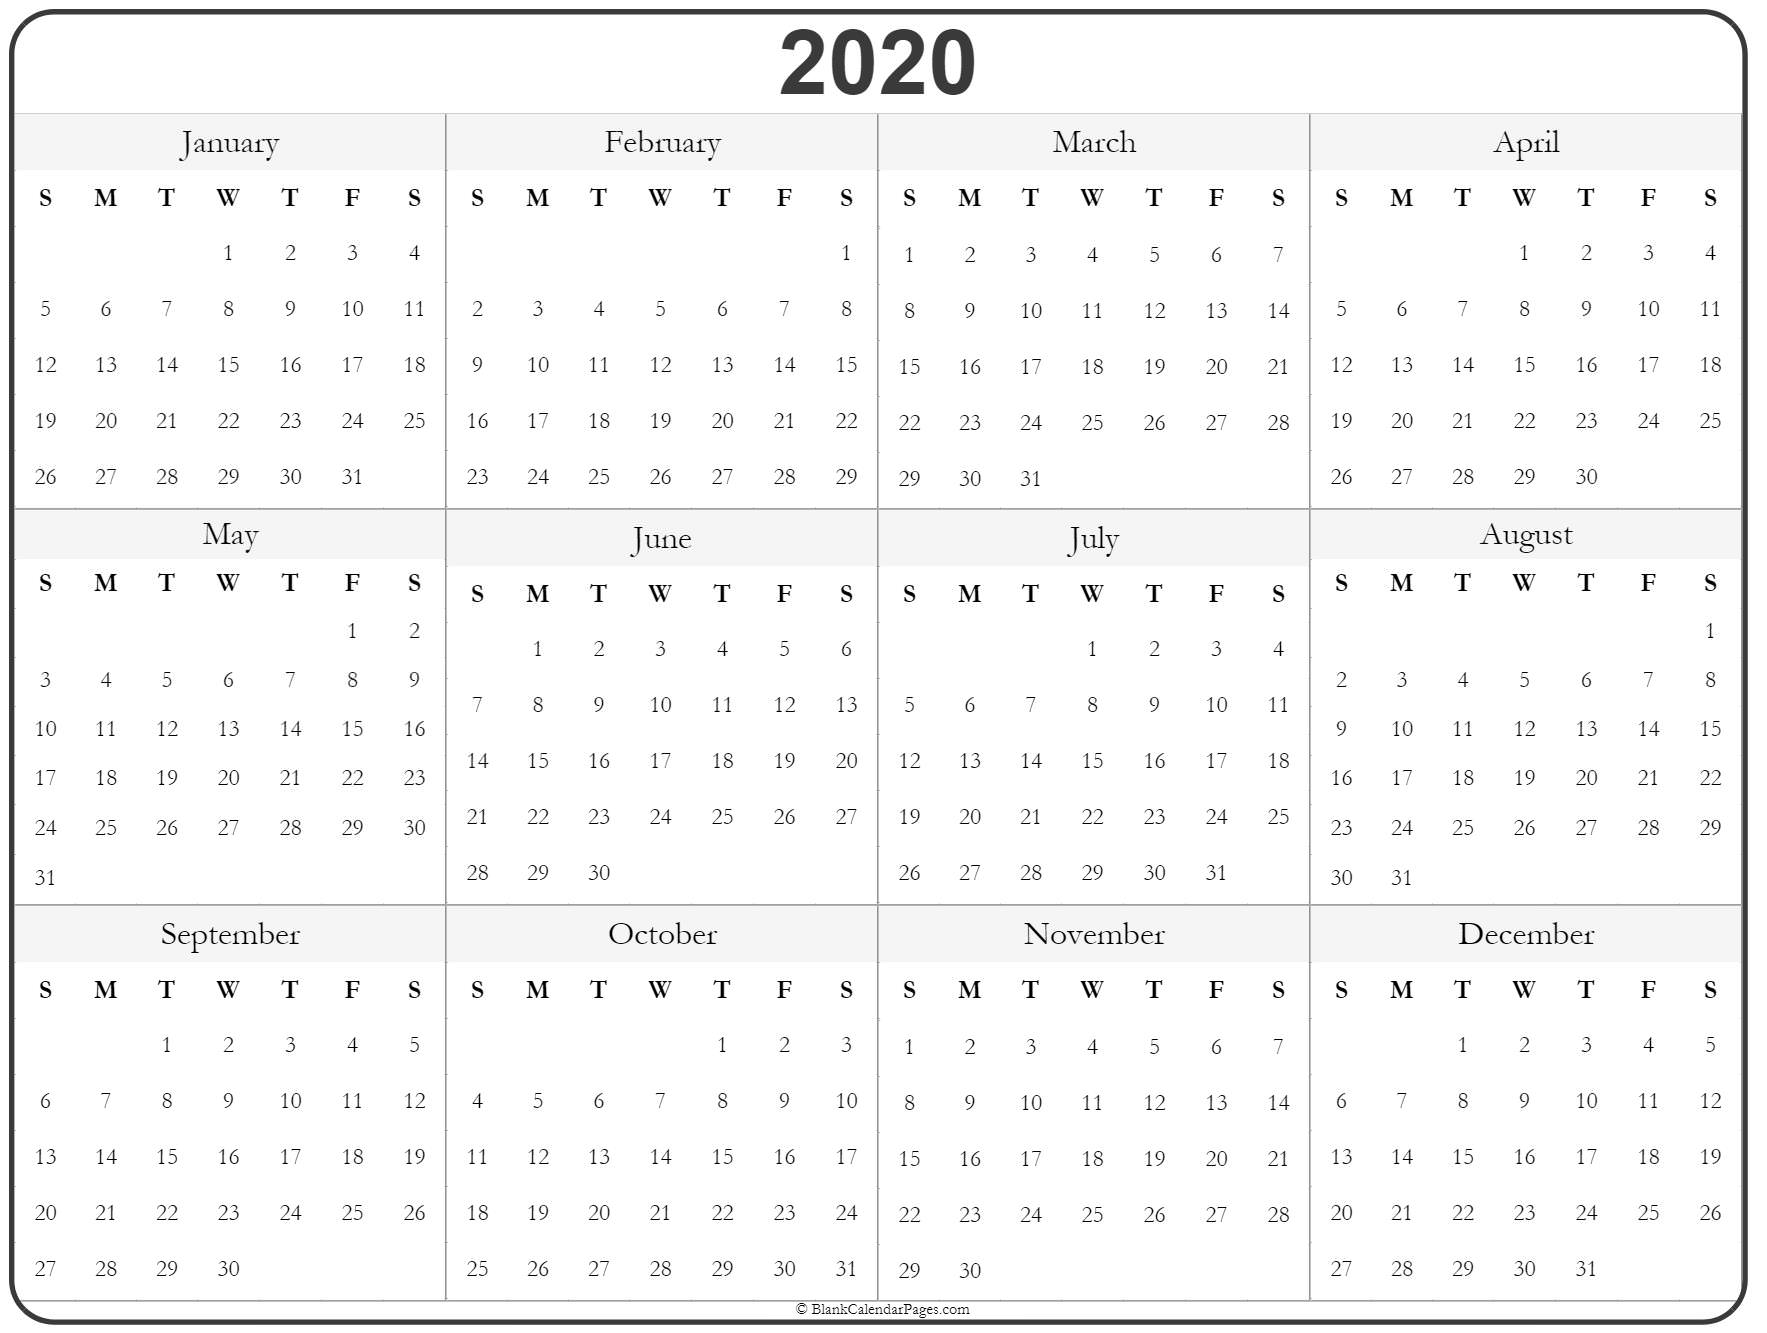 Printable Year Calendar 2020 2020 year calendar | yearly printable